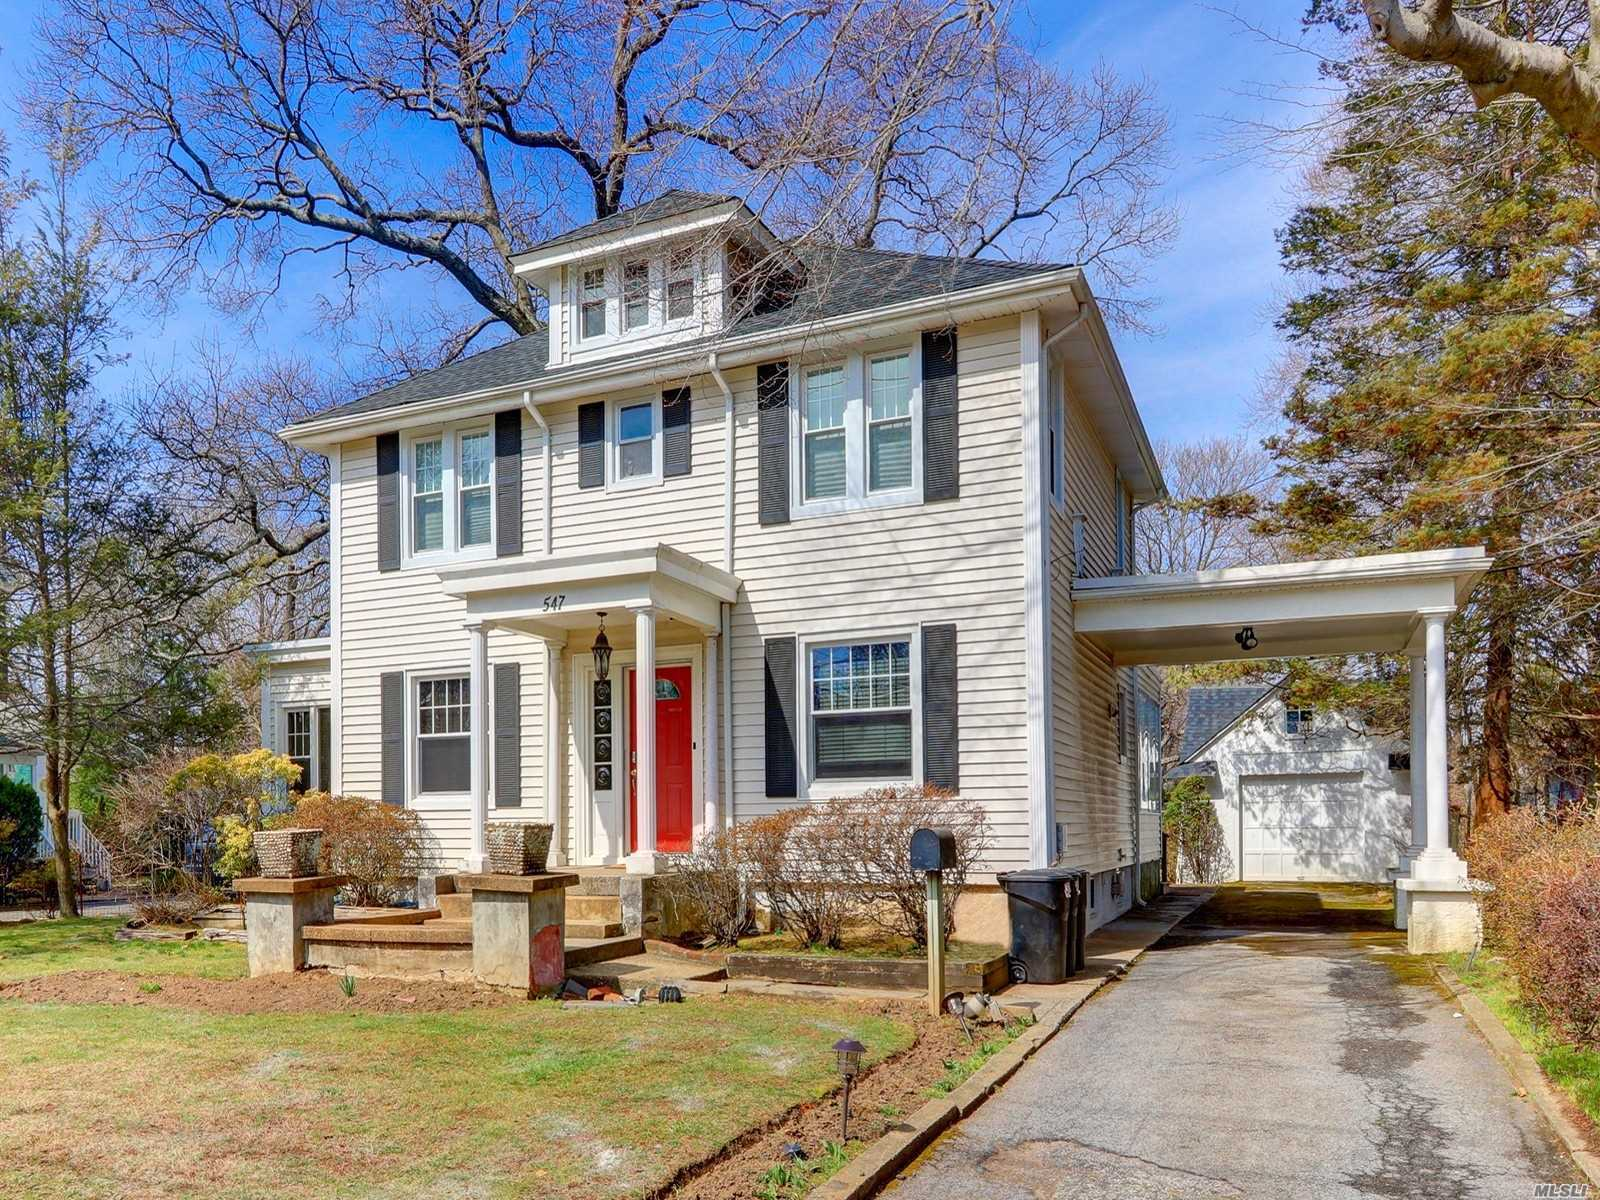 Gracious Expanded Colonial With Old World Charm Located On Parklike Property, Updated Windows And 6 Year Old Roof. Center Hallway, Extra Lg. Dr, Windowed Bkfst Rm Overlooking 75 X 290 Property. Hardwood Floors Throughout, New Main Floor Fbth, Finished Attic. A Must See!